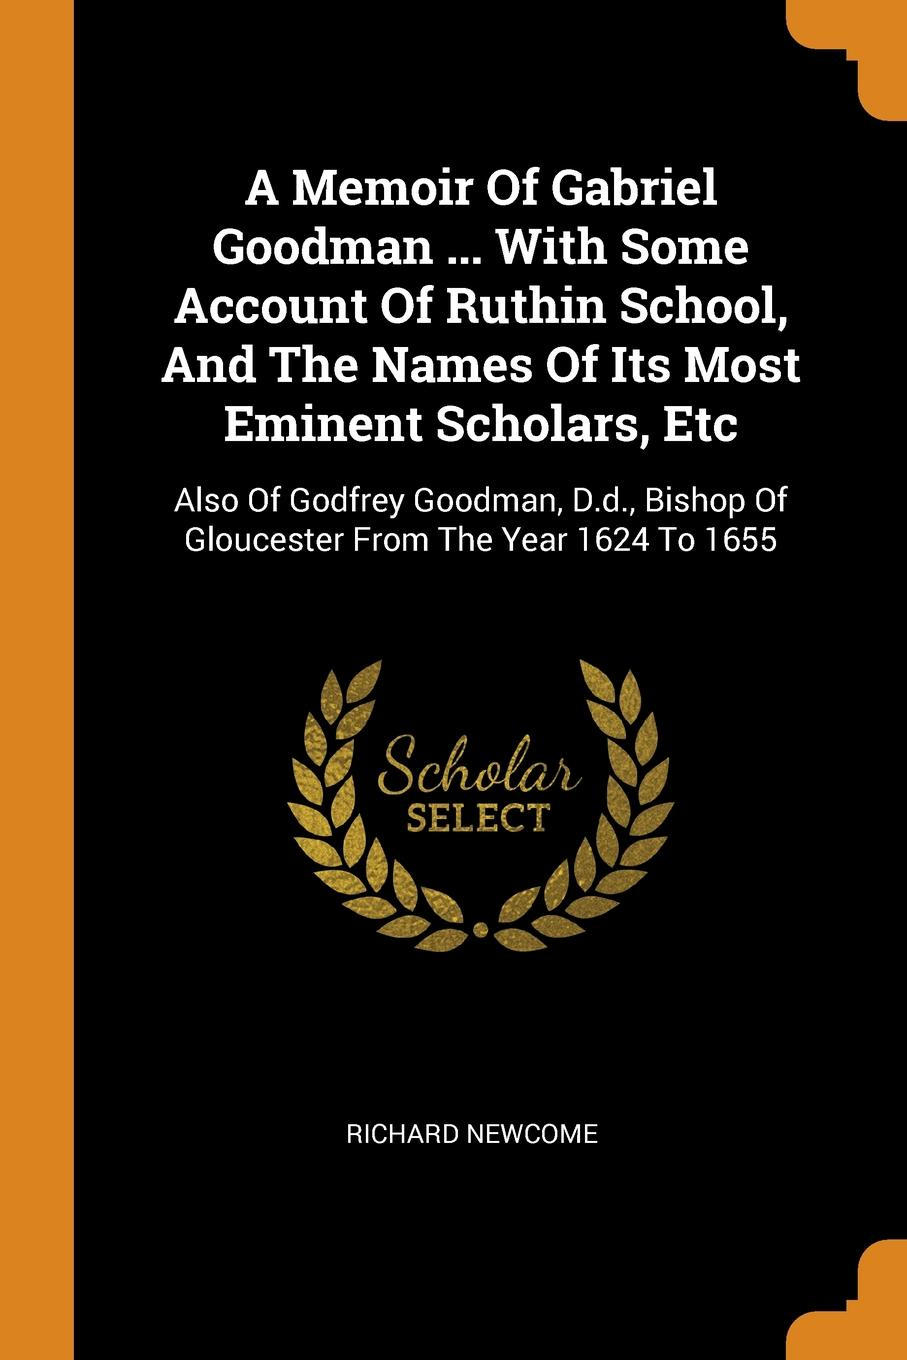 A Memoir Of Gabriel Goodman ... With Some Account Of Ruthin School, And The Names Of Its Most Eminent Scholars, Etc. Also Of Godfrey Goodman, D.d., Bishop Of Gloucester From The Year 1624 To 1655